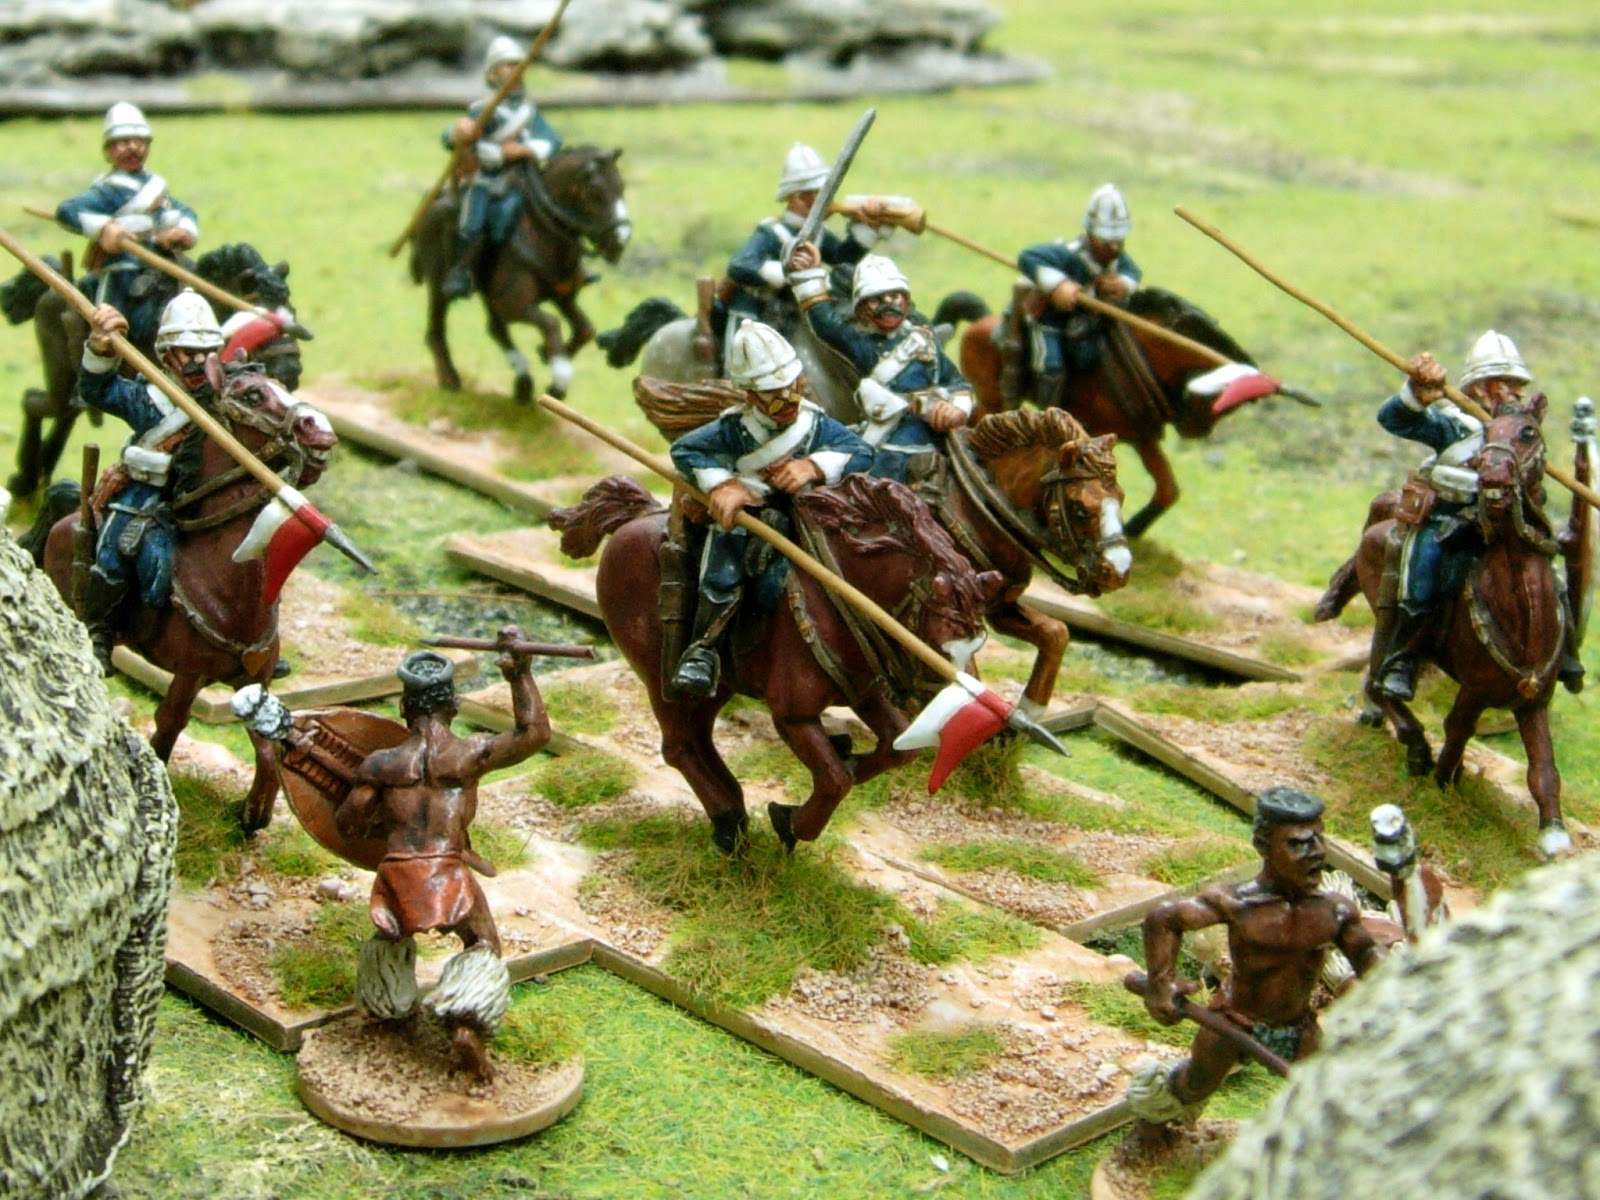 zulu wars The anglo-zulu war was fought in 1879 between britain and the zulusfrom complex beginnings, the war is notable for several particularly bloody battles, as well as for being a landmark in the timeline of colonialism in the region the war signaled the end of the independent zulu nation.